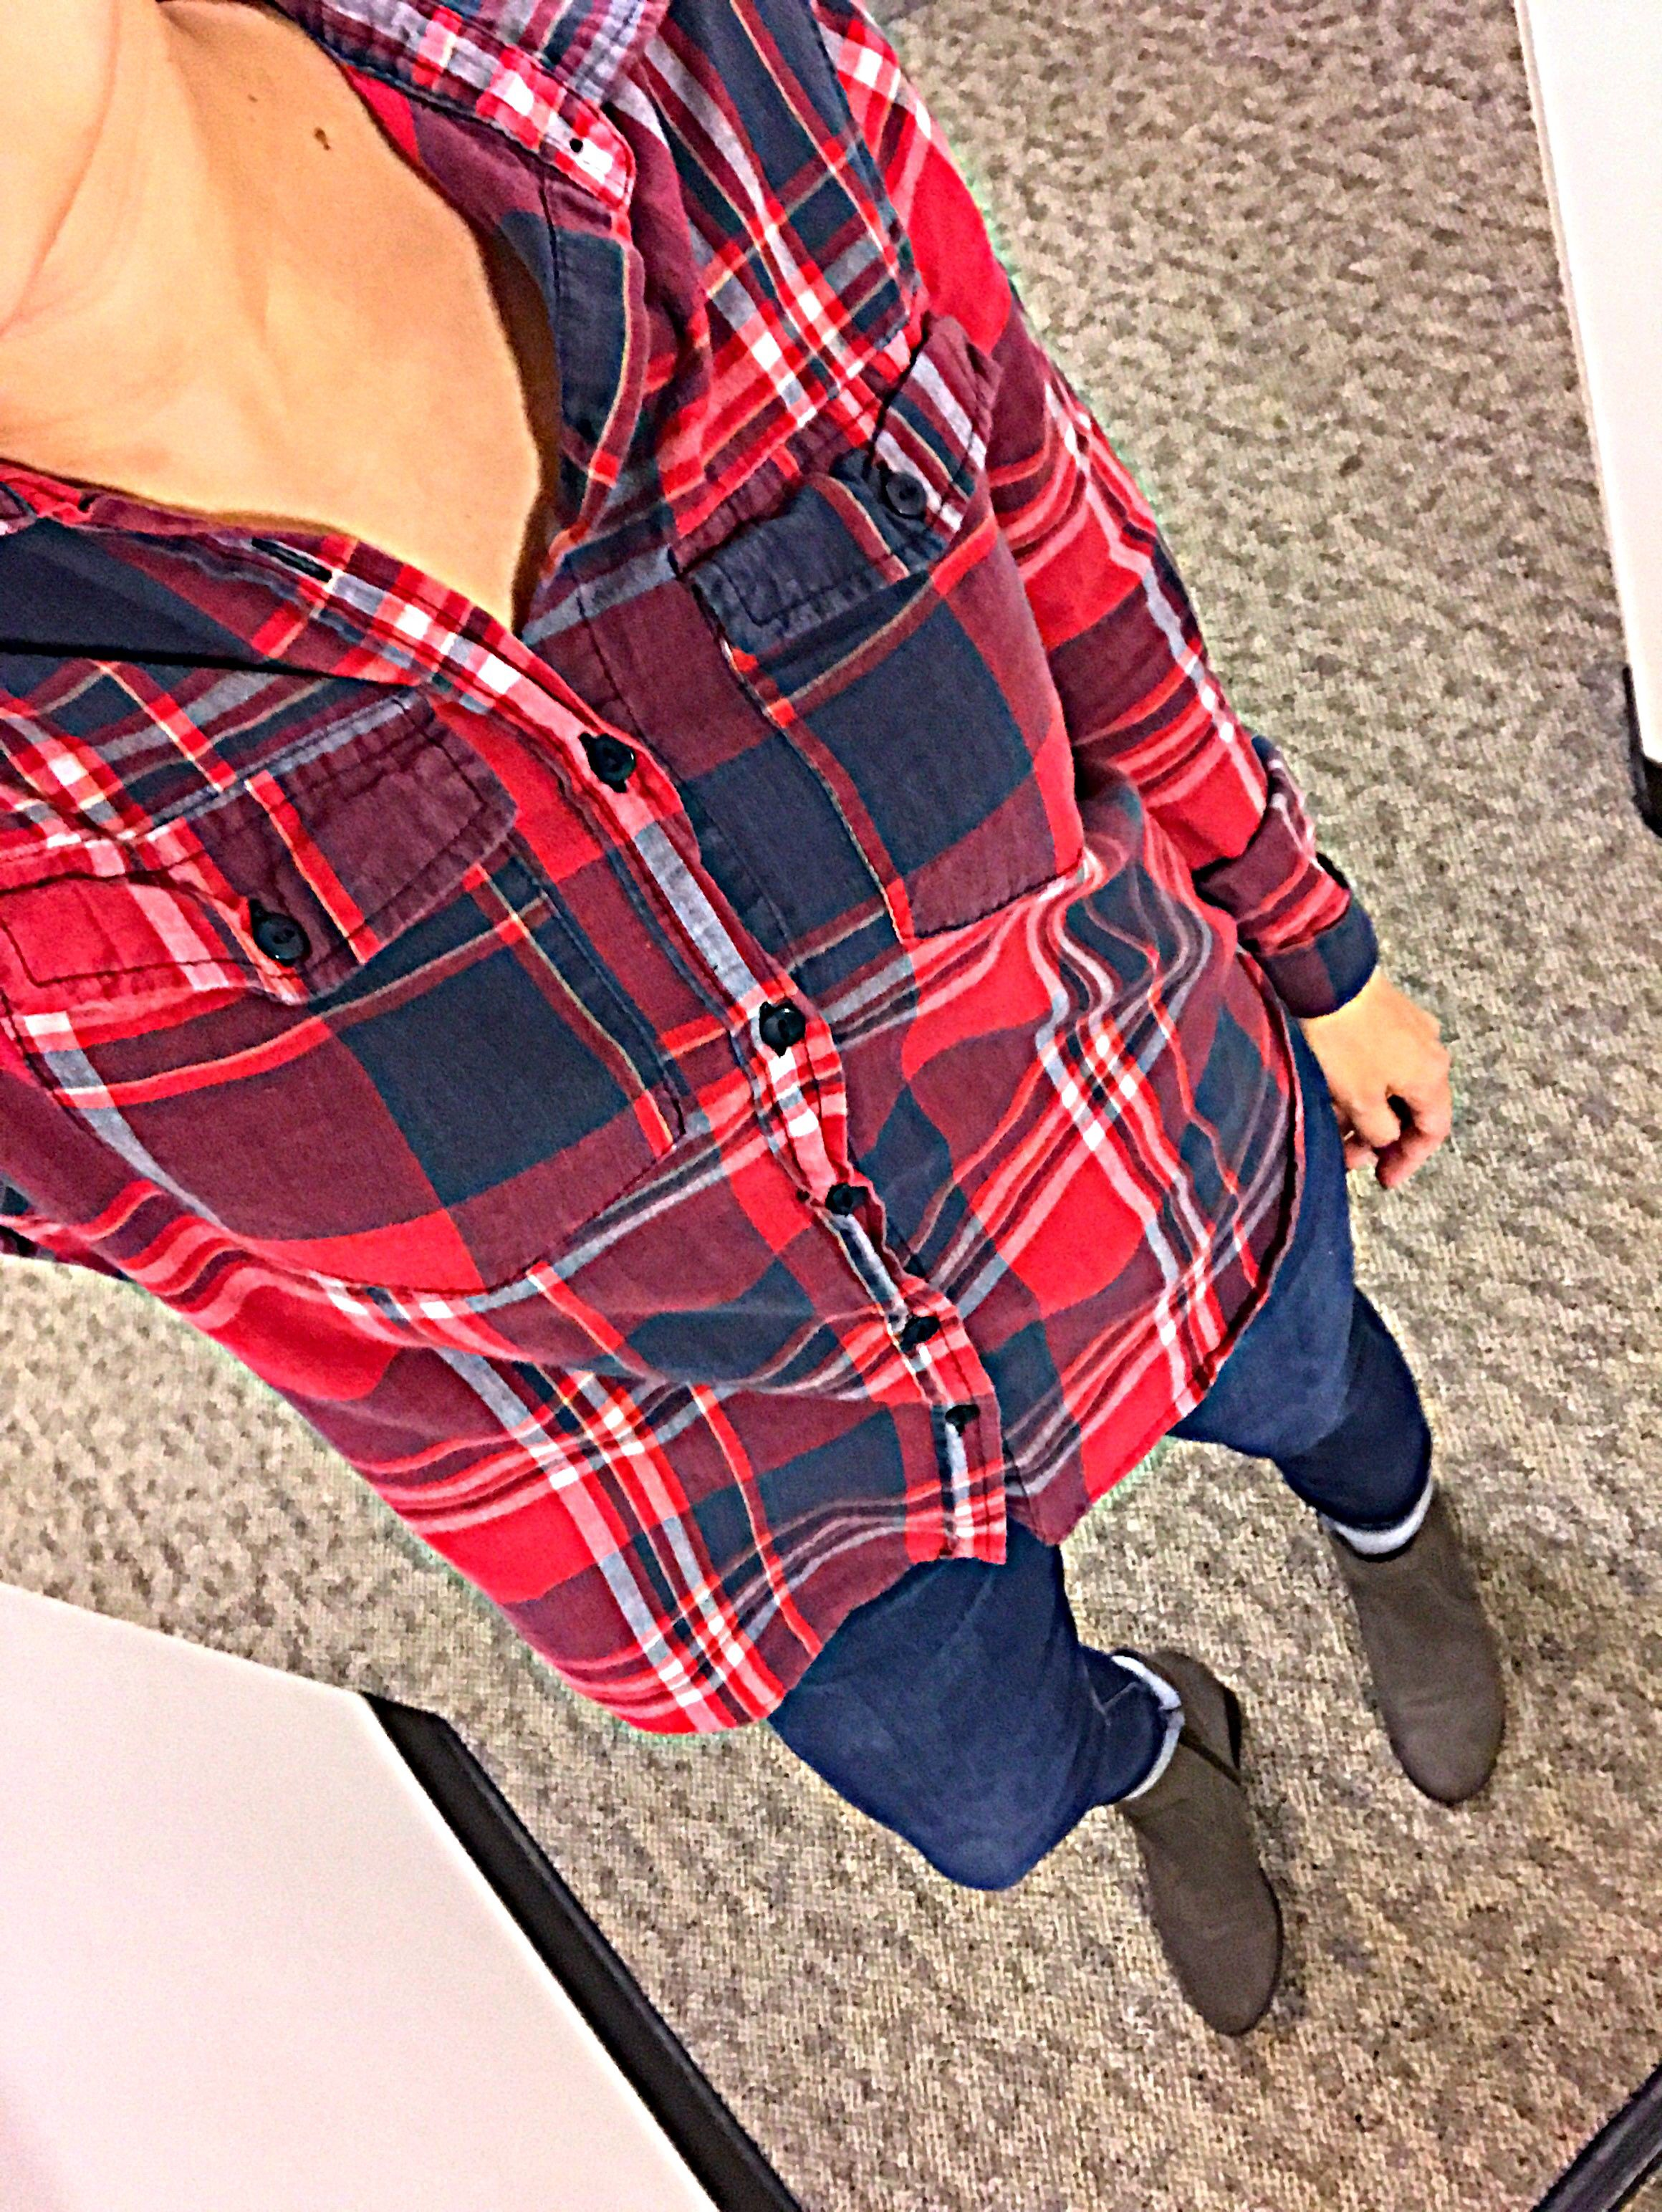 Flannel with jeans and boots  Flannel Jeans Boots fall fashion style flannel fashionblogger